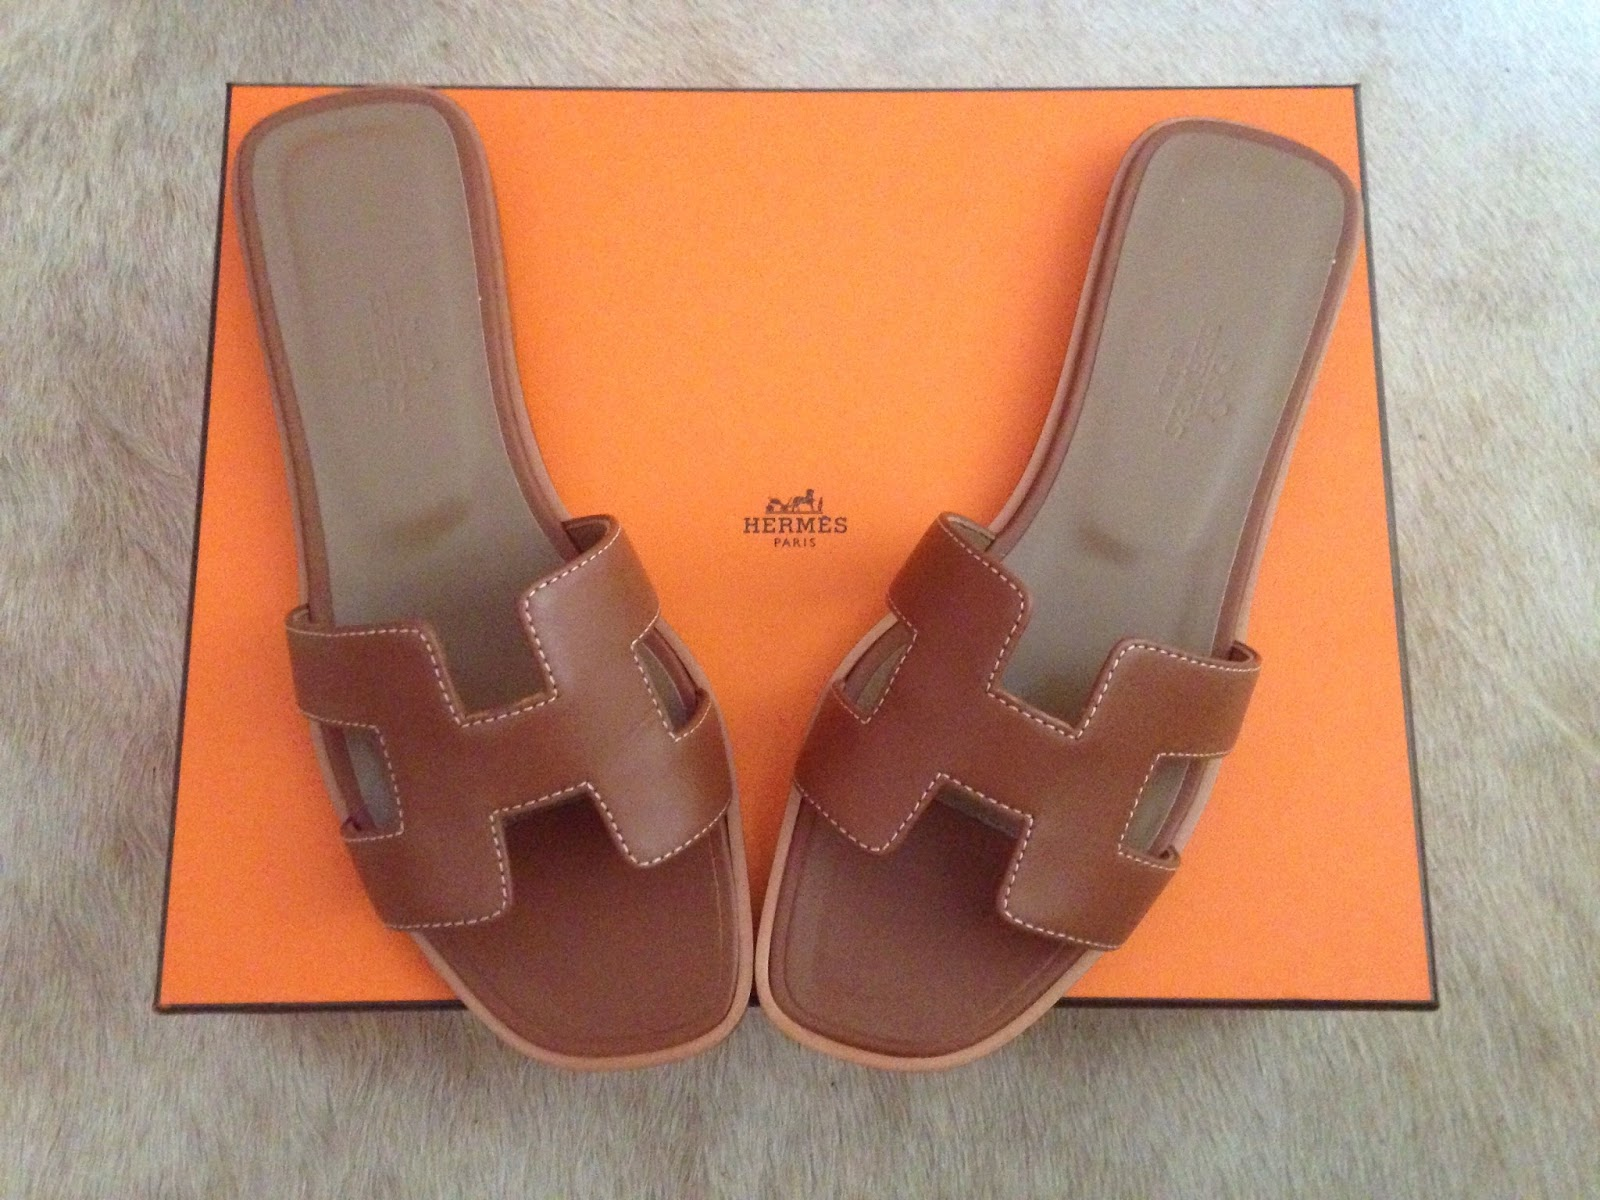 Cristina from The Brunette Nomad, Dallas fashion blogger, shares her first impressions of the Hermes Oran Sandals